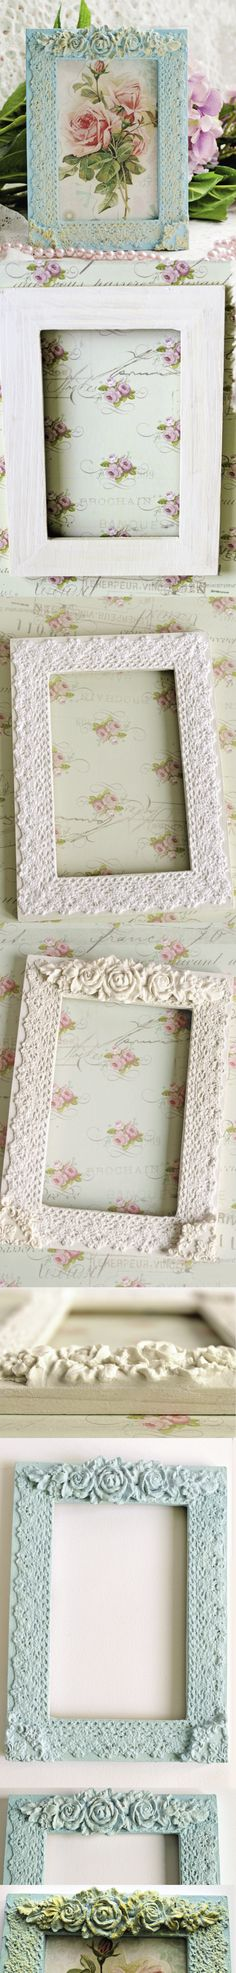 DIY Decoupage with lace. How to make a beautifull photo frame with lace. #photoframe #decoupage #tutorial